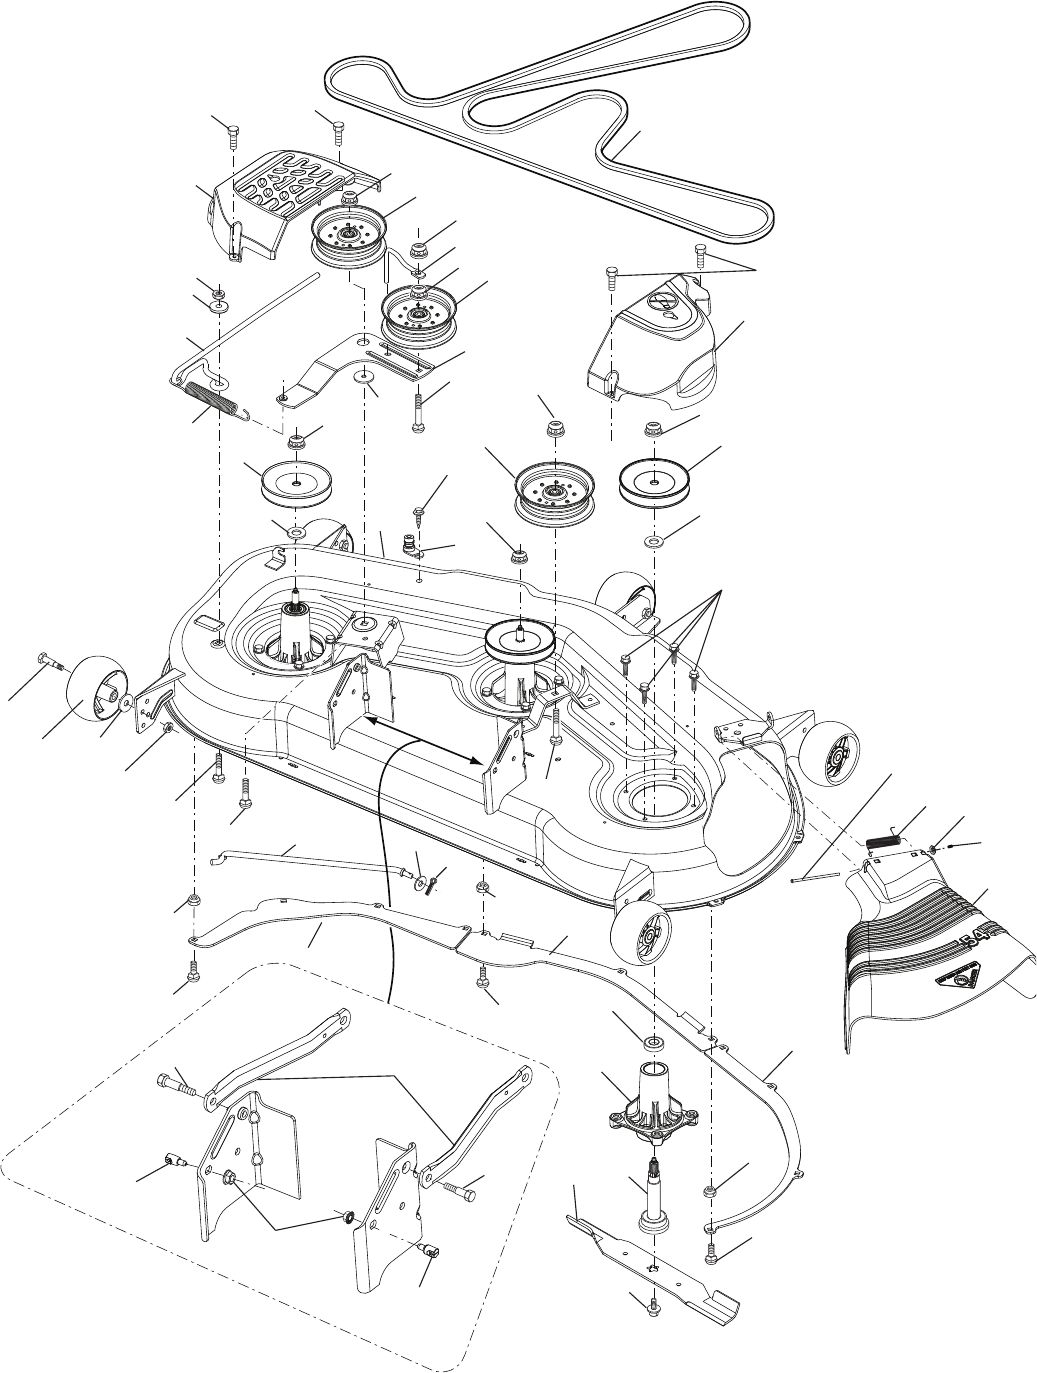 Page 41 of Husqvarna Lawn Mower 03002 User Guide